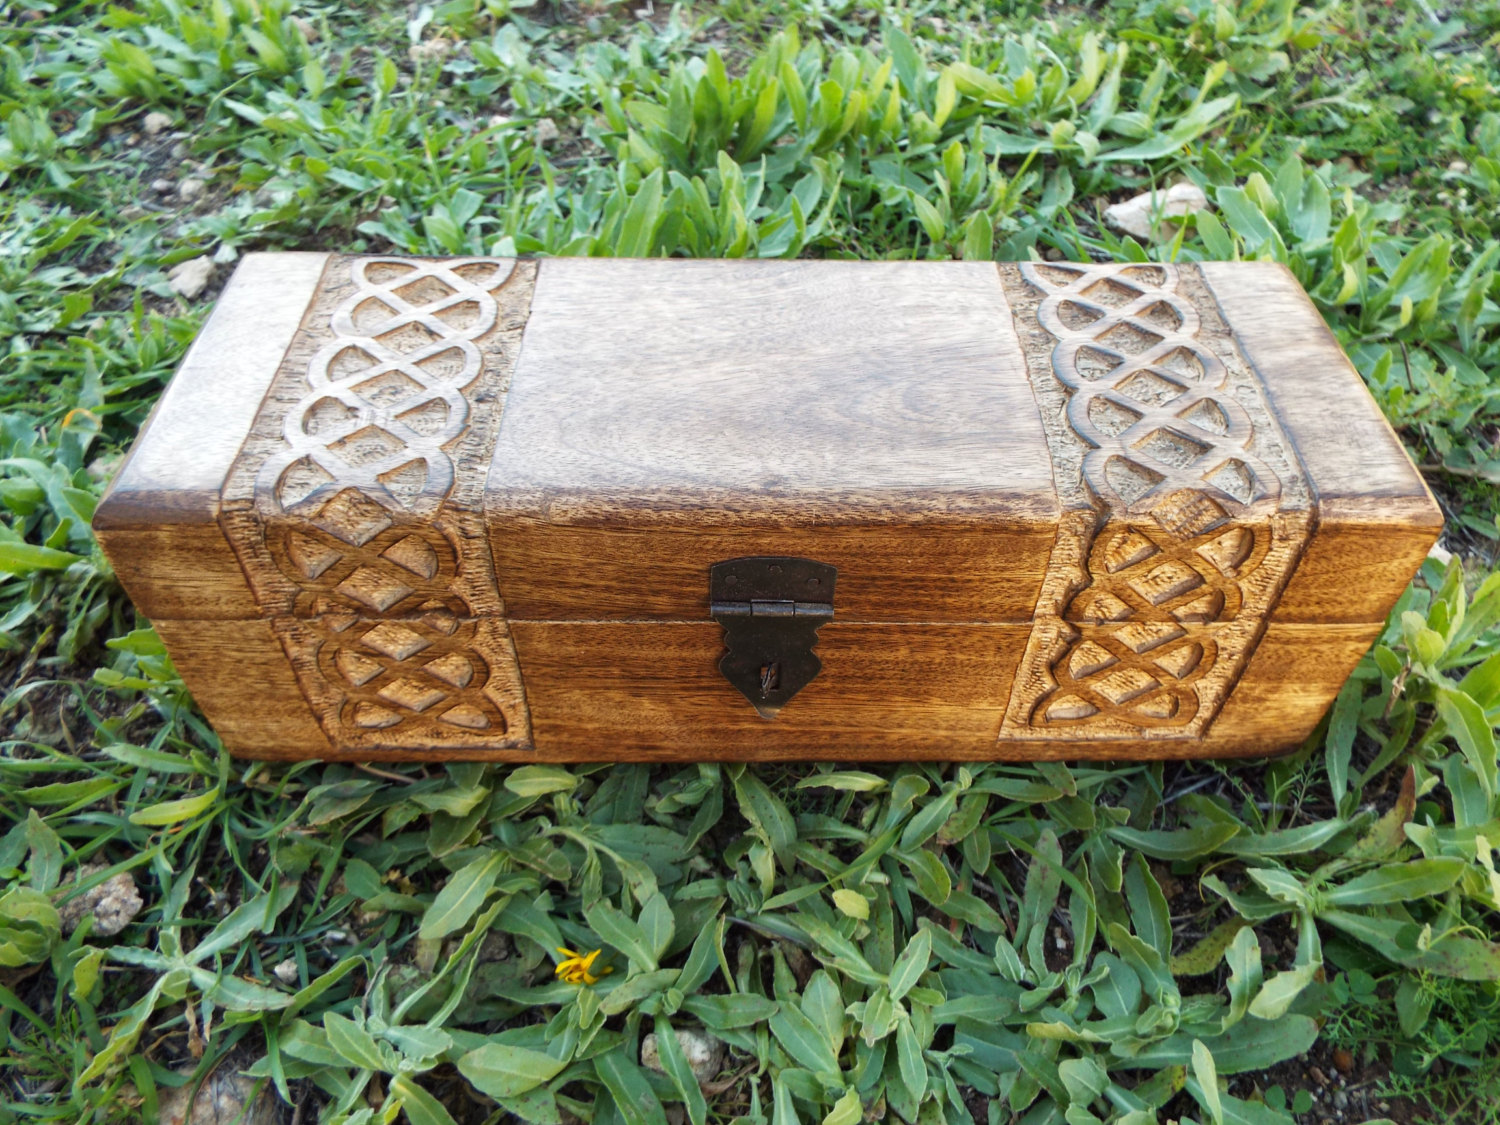 Box wooden celtic knot mango tree jewelry handmade symbol Eco friendly home decor